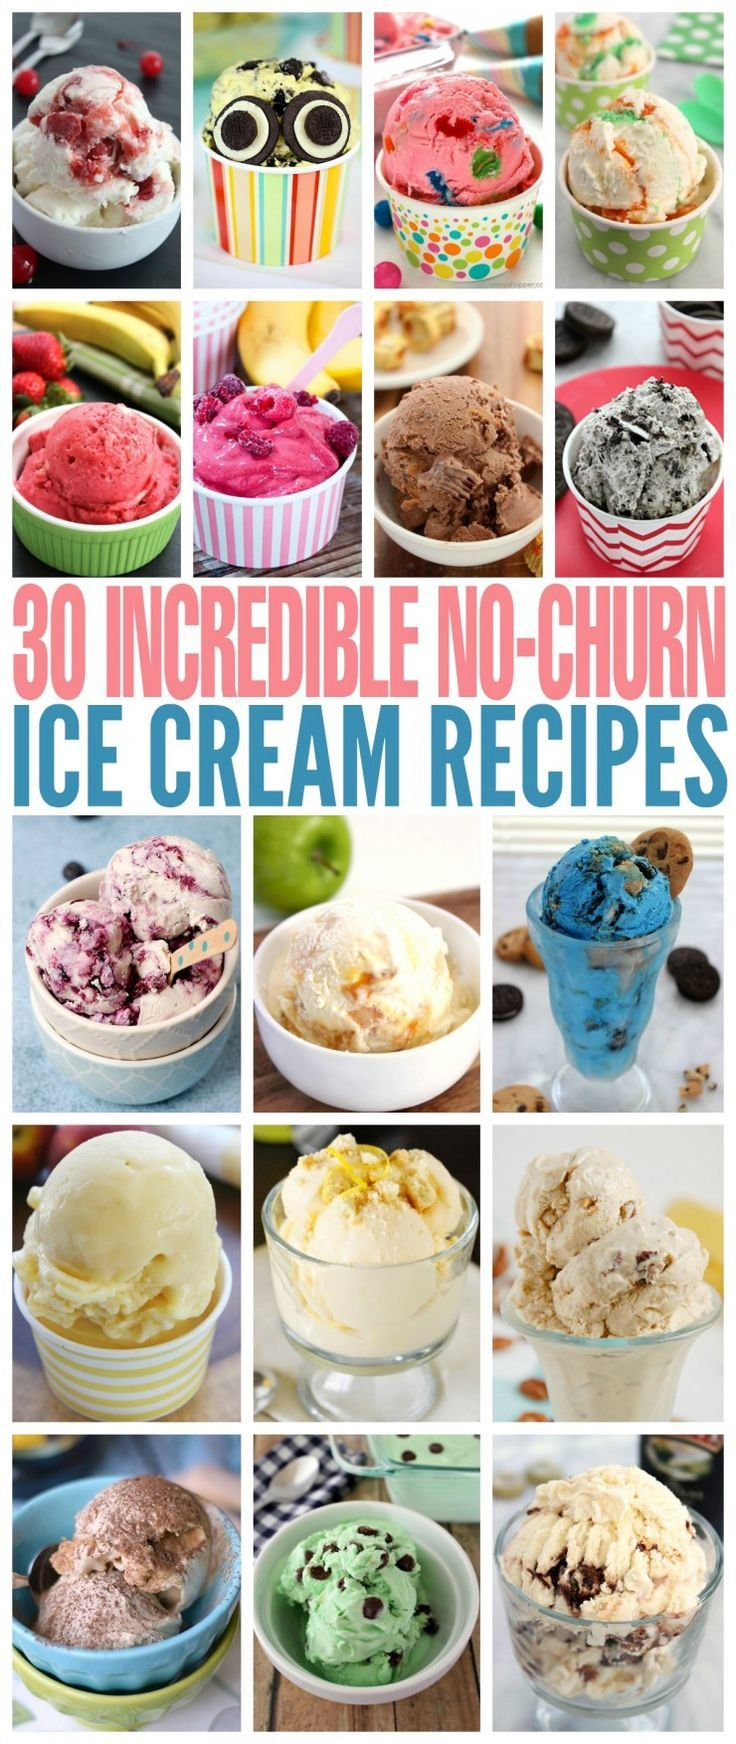 These 30 Incredible No-Churn Ice Cream Recipes are all super easy to make at home. Ice Cream has never been so good! They are sure to be crowd pleasers all summer long.